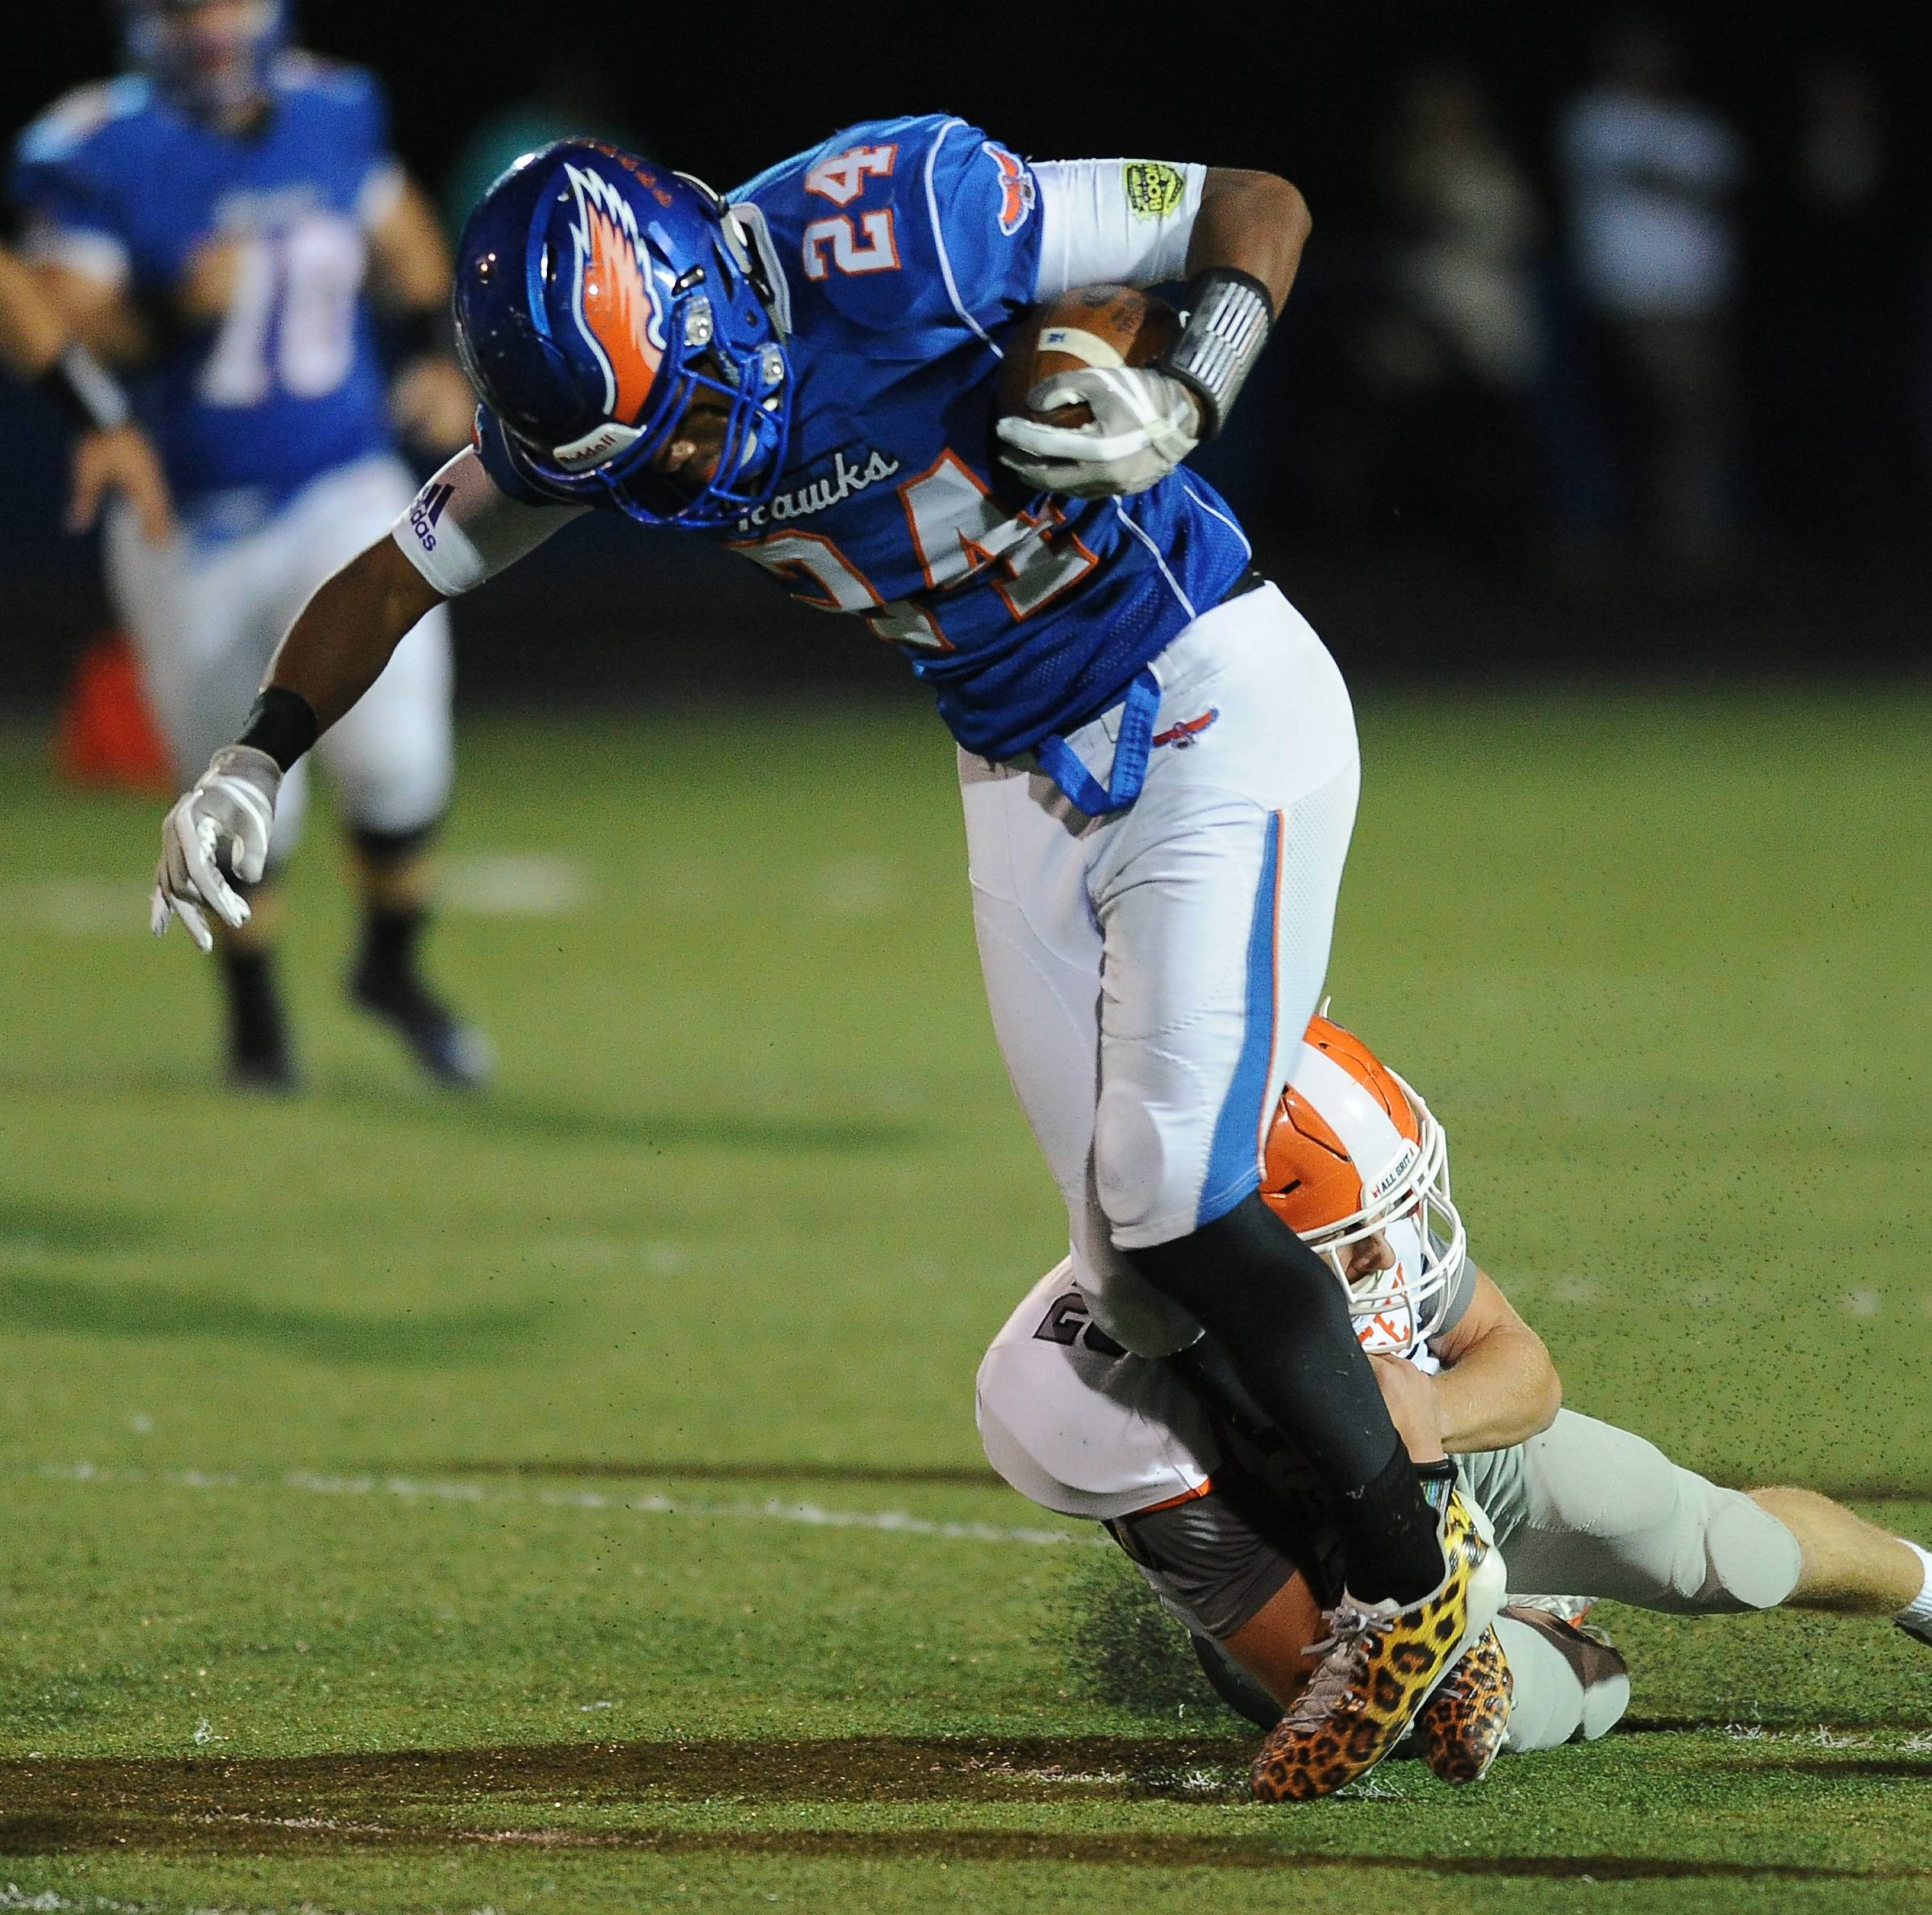 Hersey's Vince Carso wraps up Hoffman's Trevon Hall on a running play in the first half Friday at Hoffman Estates.